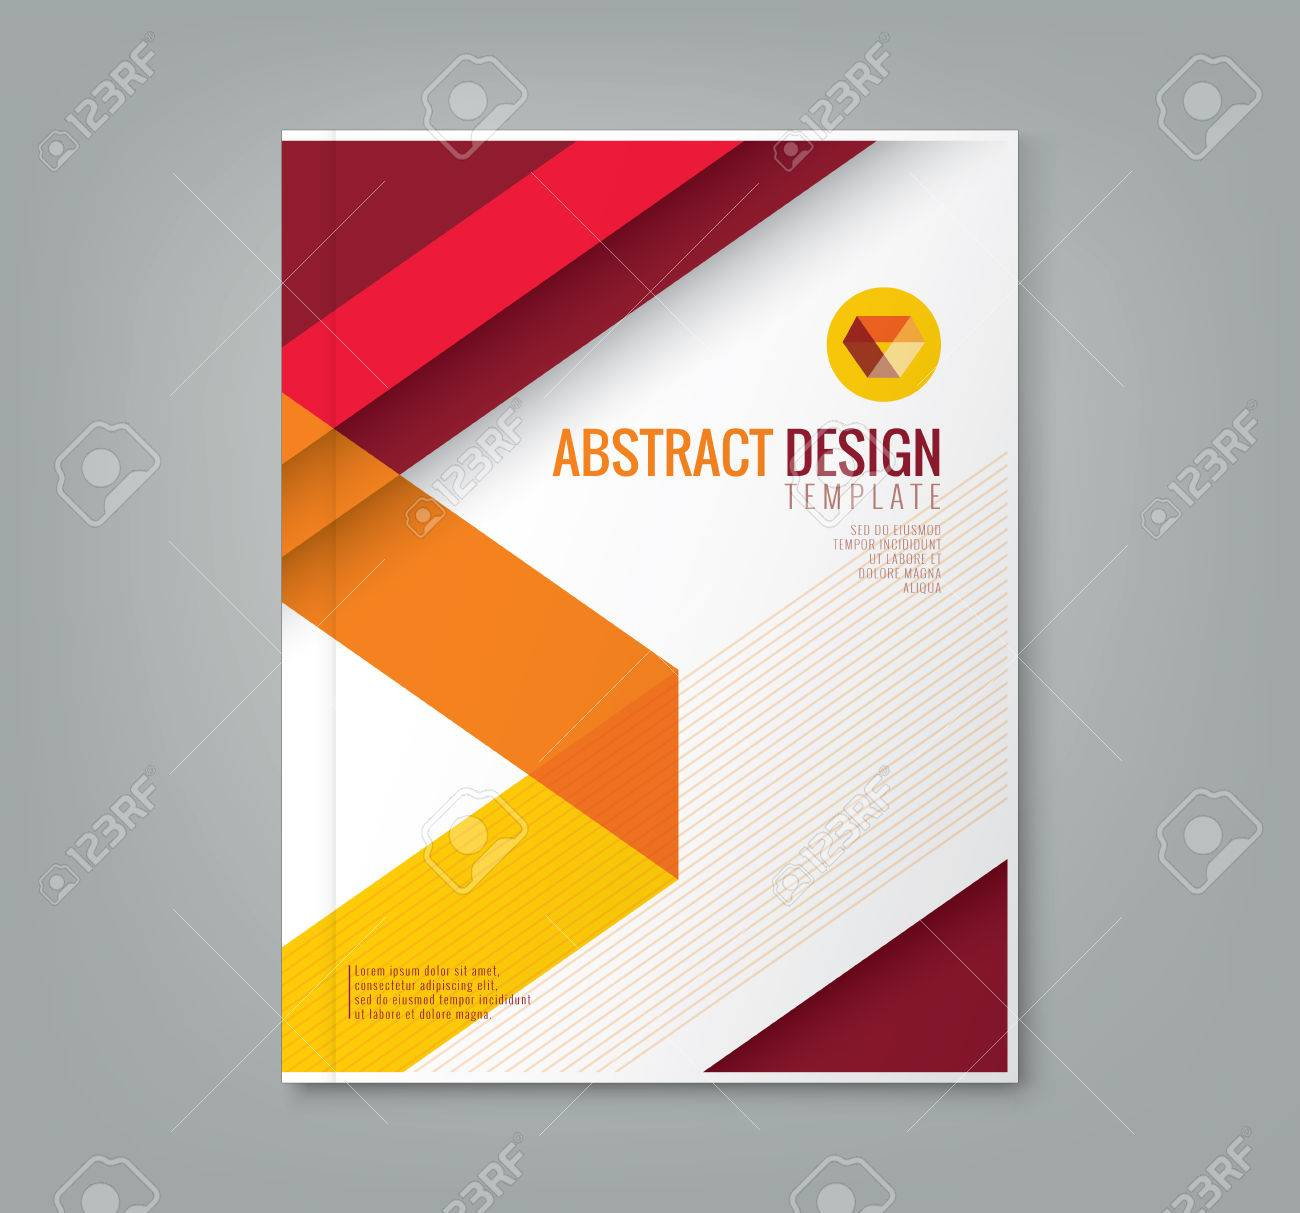 Abstract red line design background template for business annual abstract red line design background template for business annual report book cover brochure flyer poster stock accmission Gallery